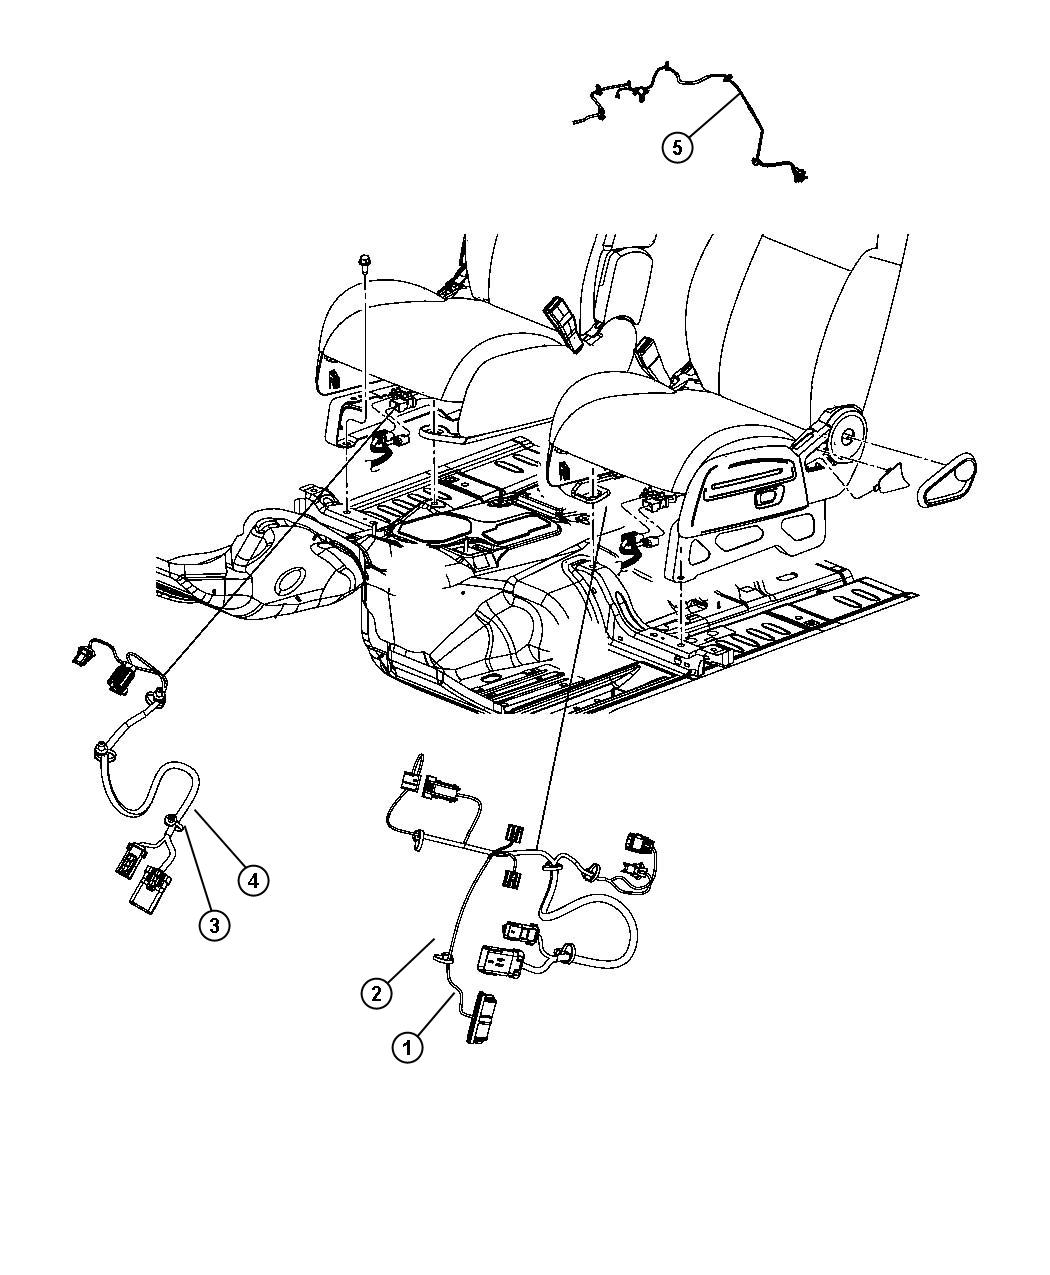 Jeep Liberty Wiring. Seat. 6 way power, fold flat seat